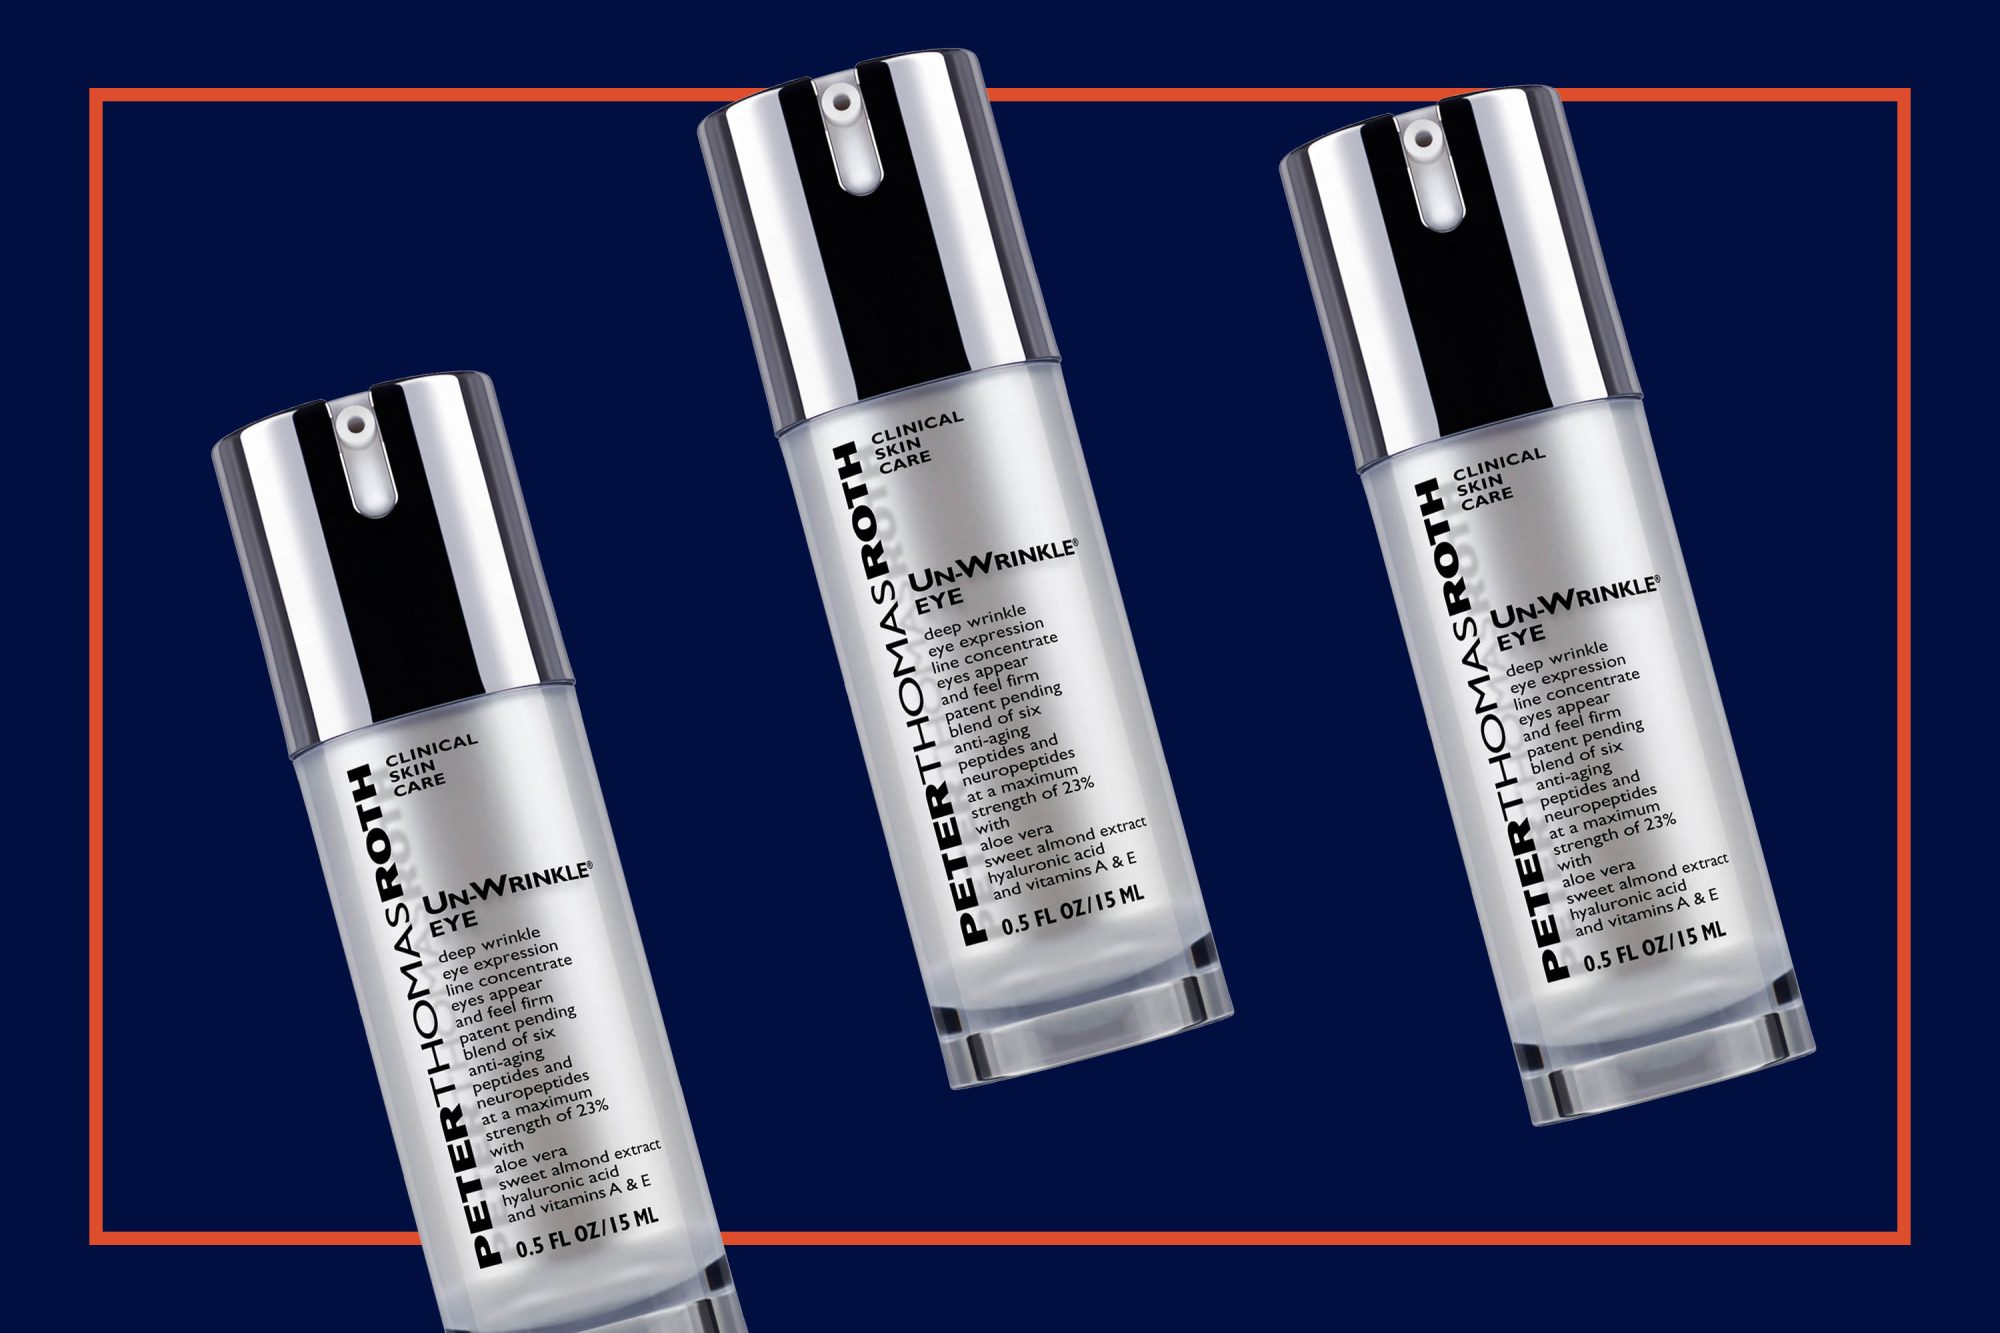 This $200 Anti-Wrinkle Eye Treatment Is on Sale for Just $38 During Cyber Monday